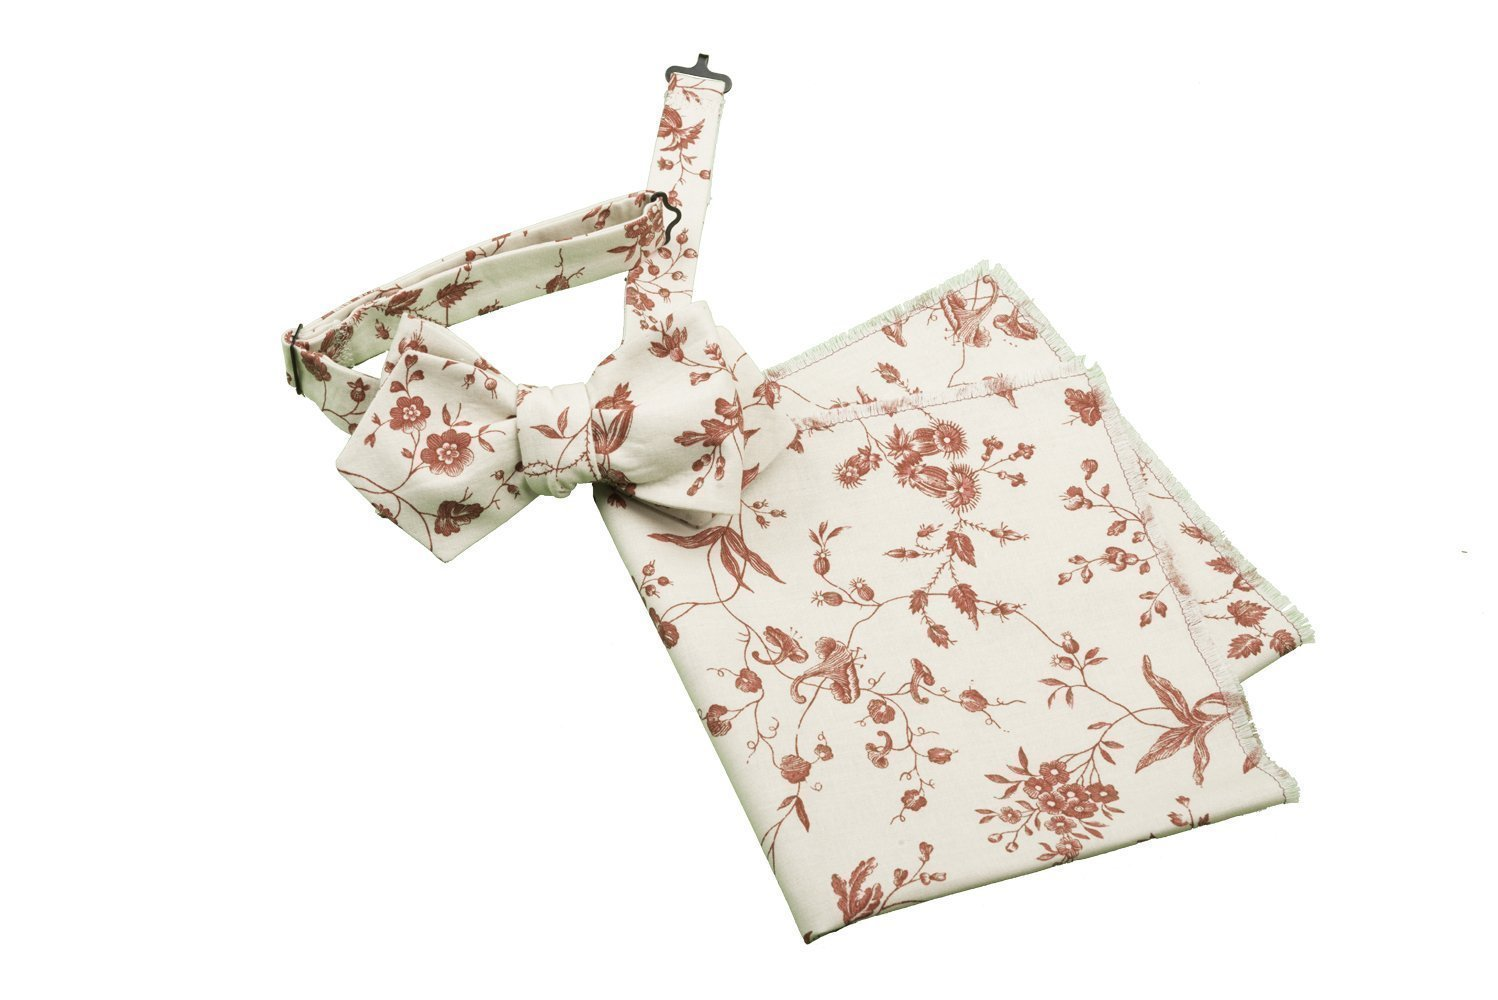 Bow Tie, Selftie, Pocket Square, Set, Men, Woman, Adjustable, Hook, Cotton, Percale, Ivory, Beige, Red, White, Floral, Flowers, Souleiado, Provencal, Pattern, One size, Made in Italy, Handmade by Old Fashion Sartoria, Florence, Italy